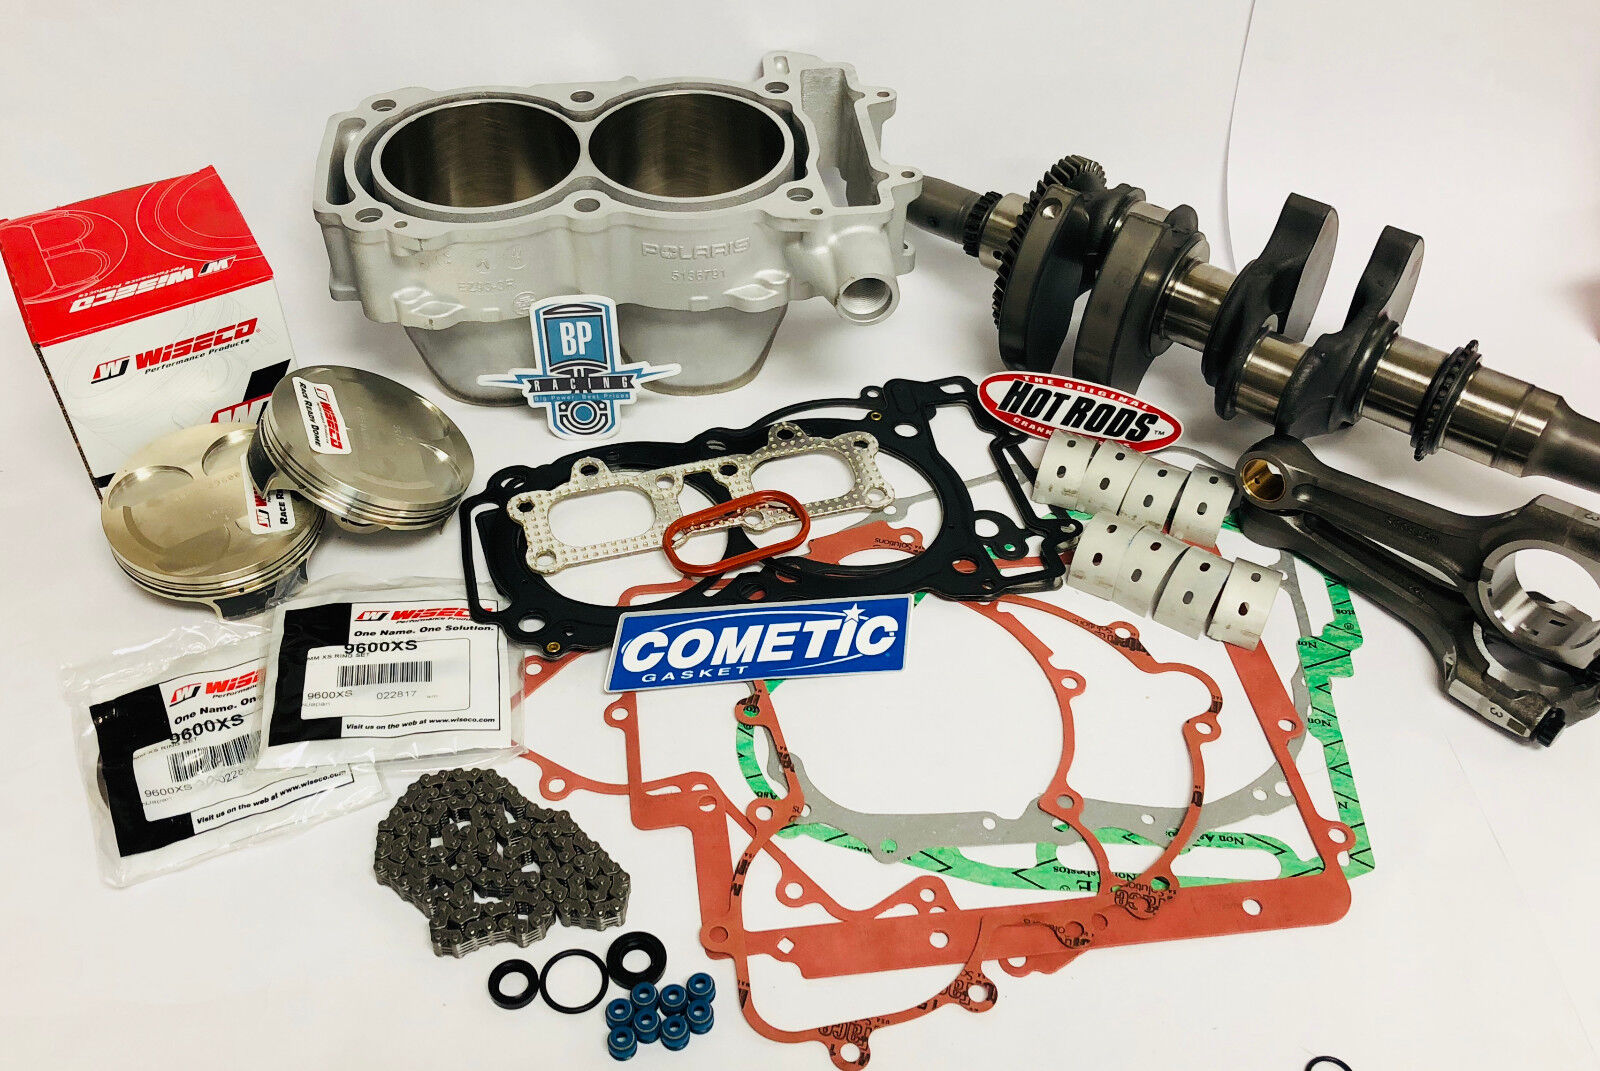 Ranger XP 900 XP900 Complete Rebuild Kit Wiseco 10:1 Hotrods Top Bottom End